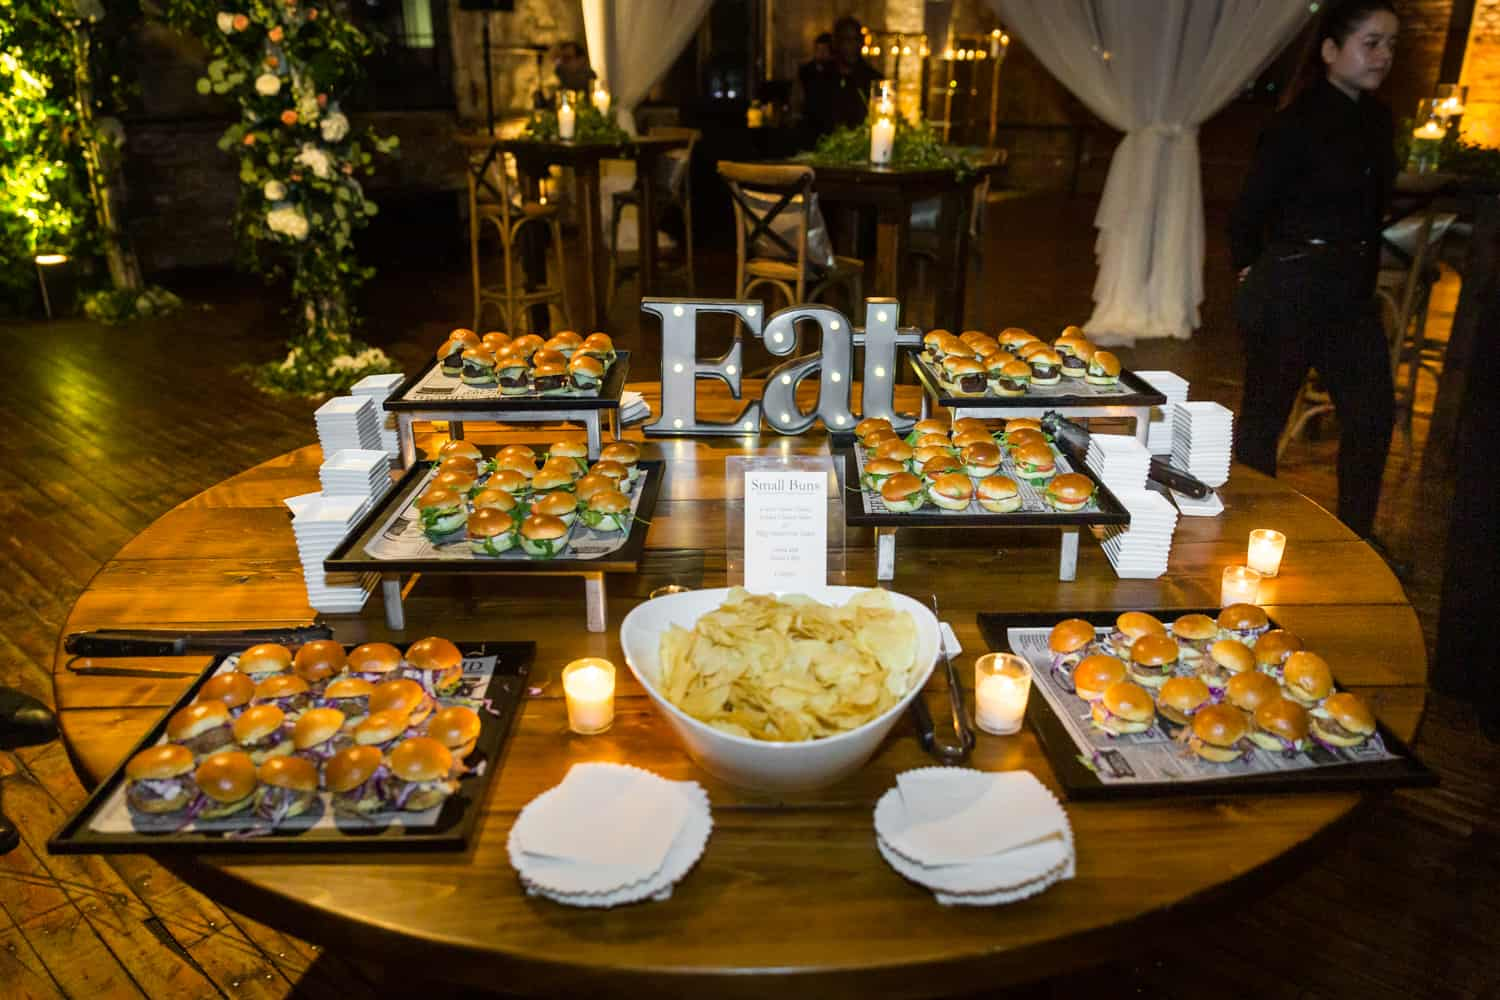 Table filled with plates of mini burgers and 'Eat' sign